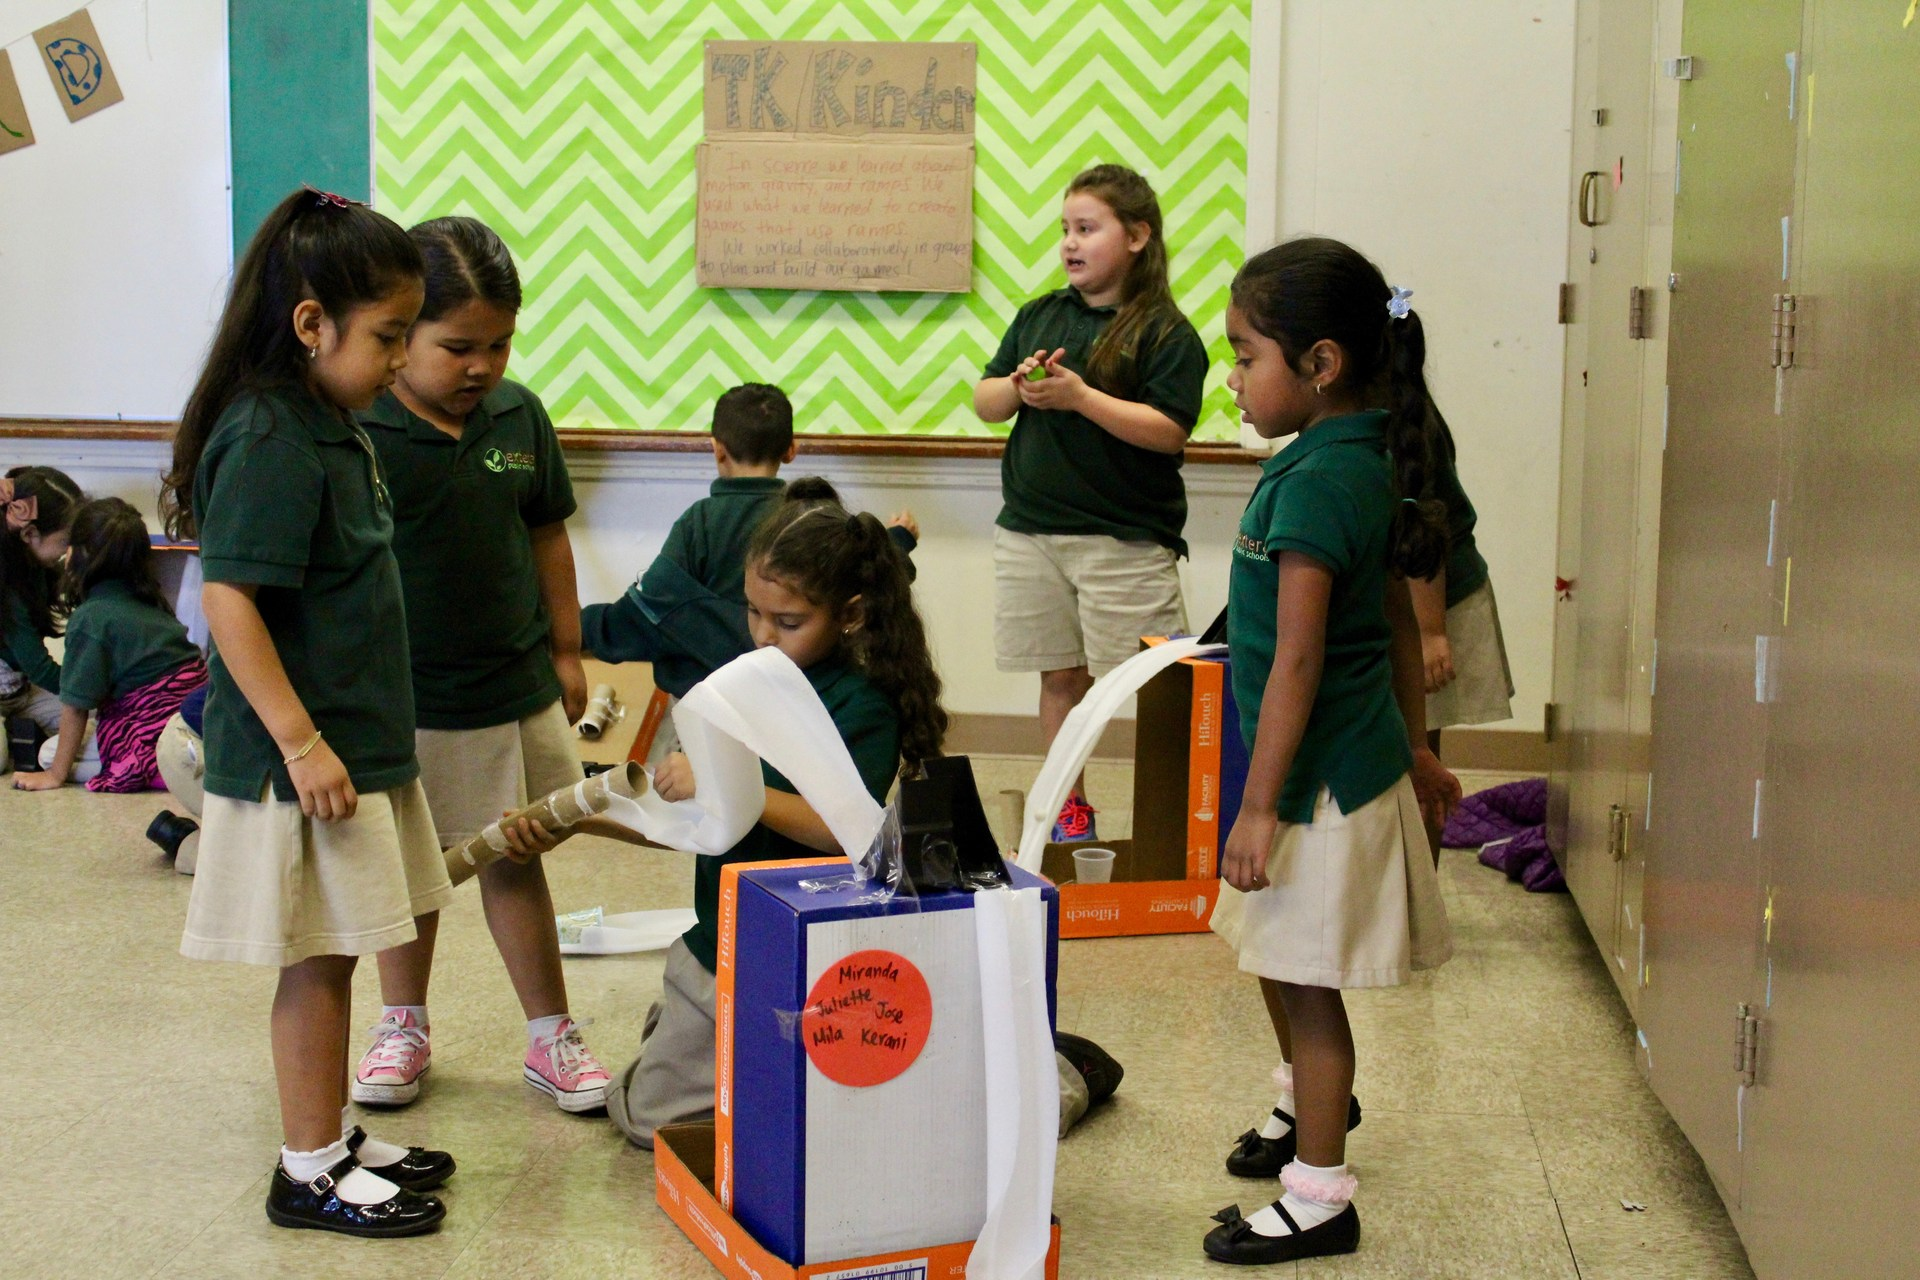 students play with game created by recycled materials